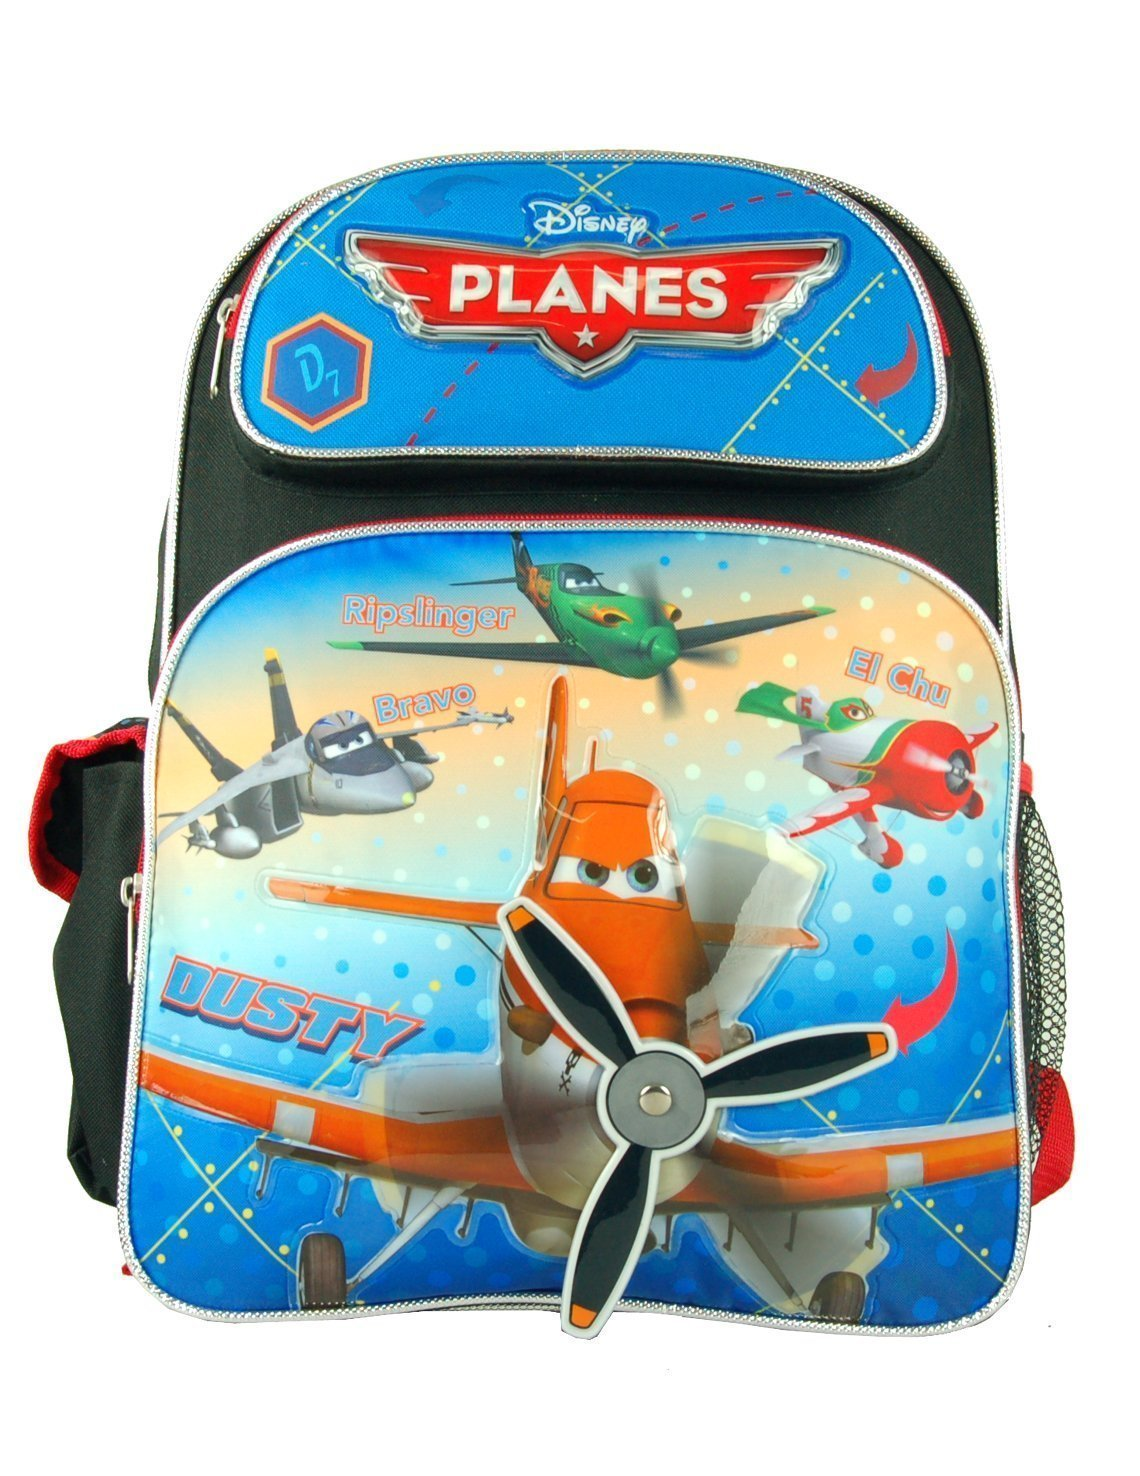 Backpack - Disney - Planes - Dusty 16